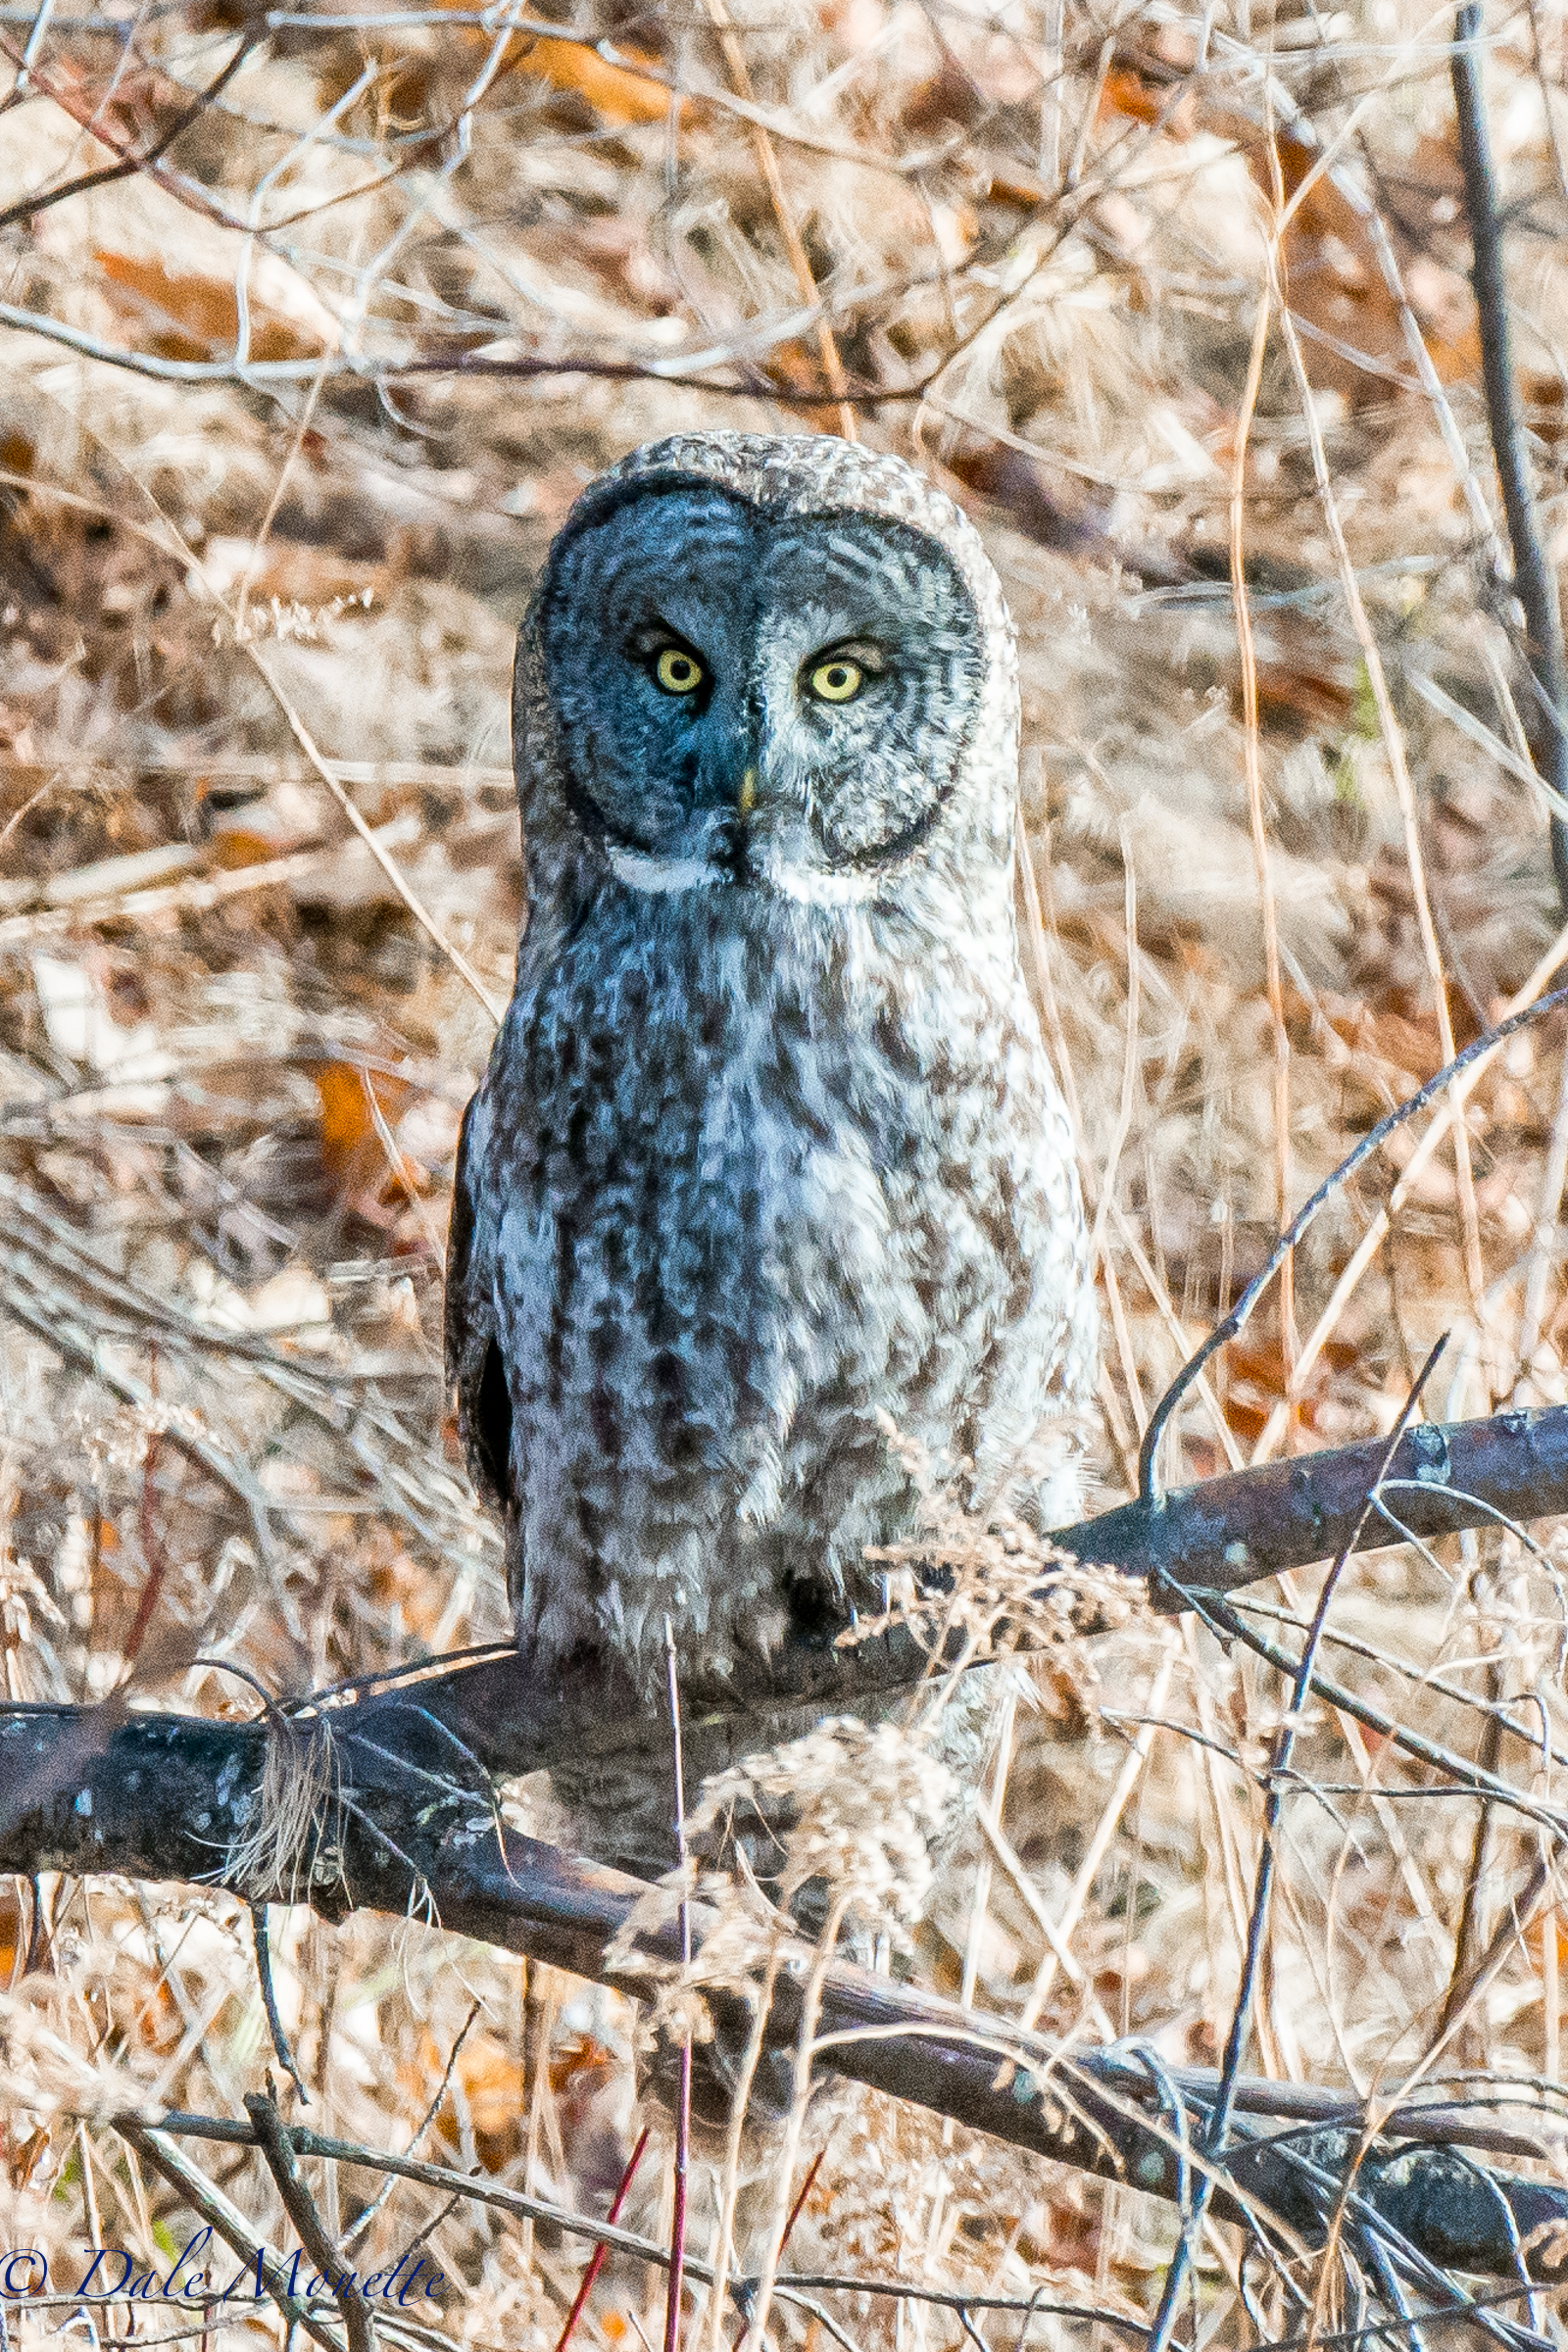 Today I drove 2 hours north to see this rare visitor from the great white north. A gray gray owl.  These guys very rarely get out to these parts and when they do all of the bird watchers come from all over the place.  I was lucky enough to find it early  as when I left there were 30 people there !